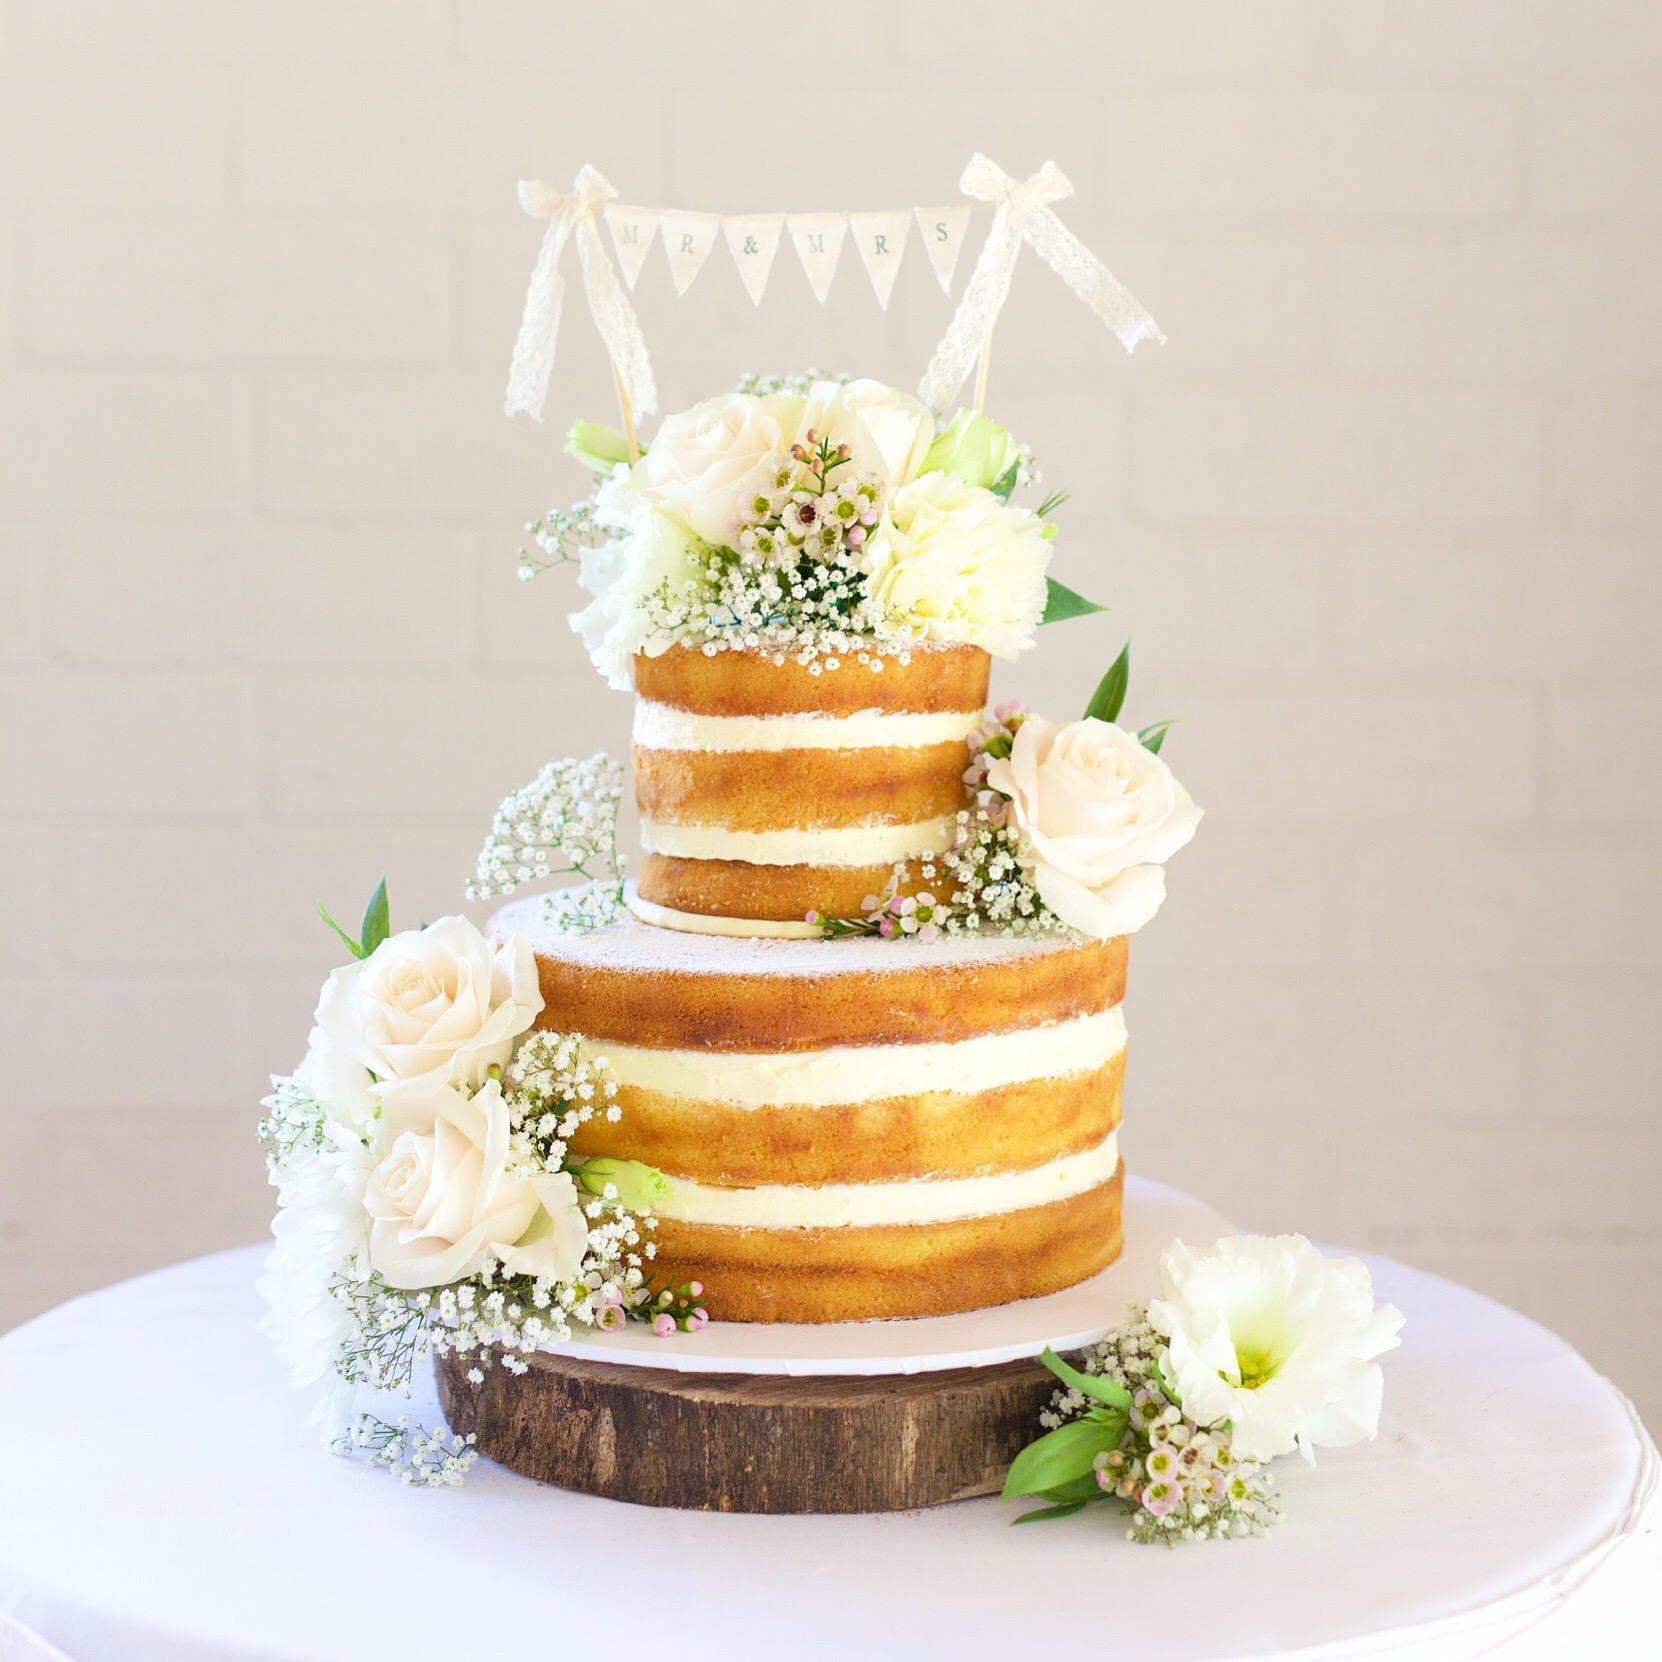 A Naked Wedding Cake Adorned With Gorgeous,Fresh Blooms. Cake & Flower Styling By Byron Bay Cake Boutique.